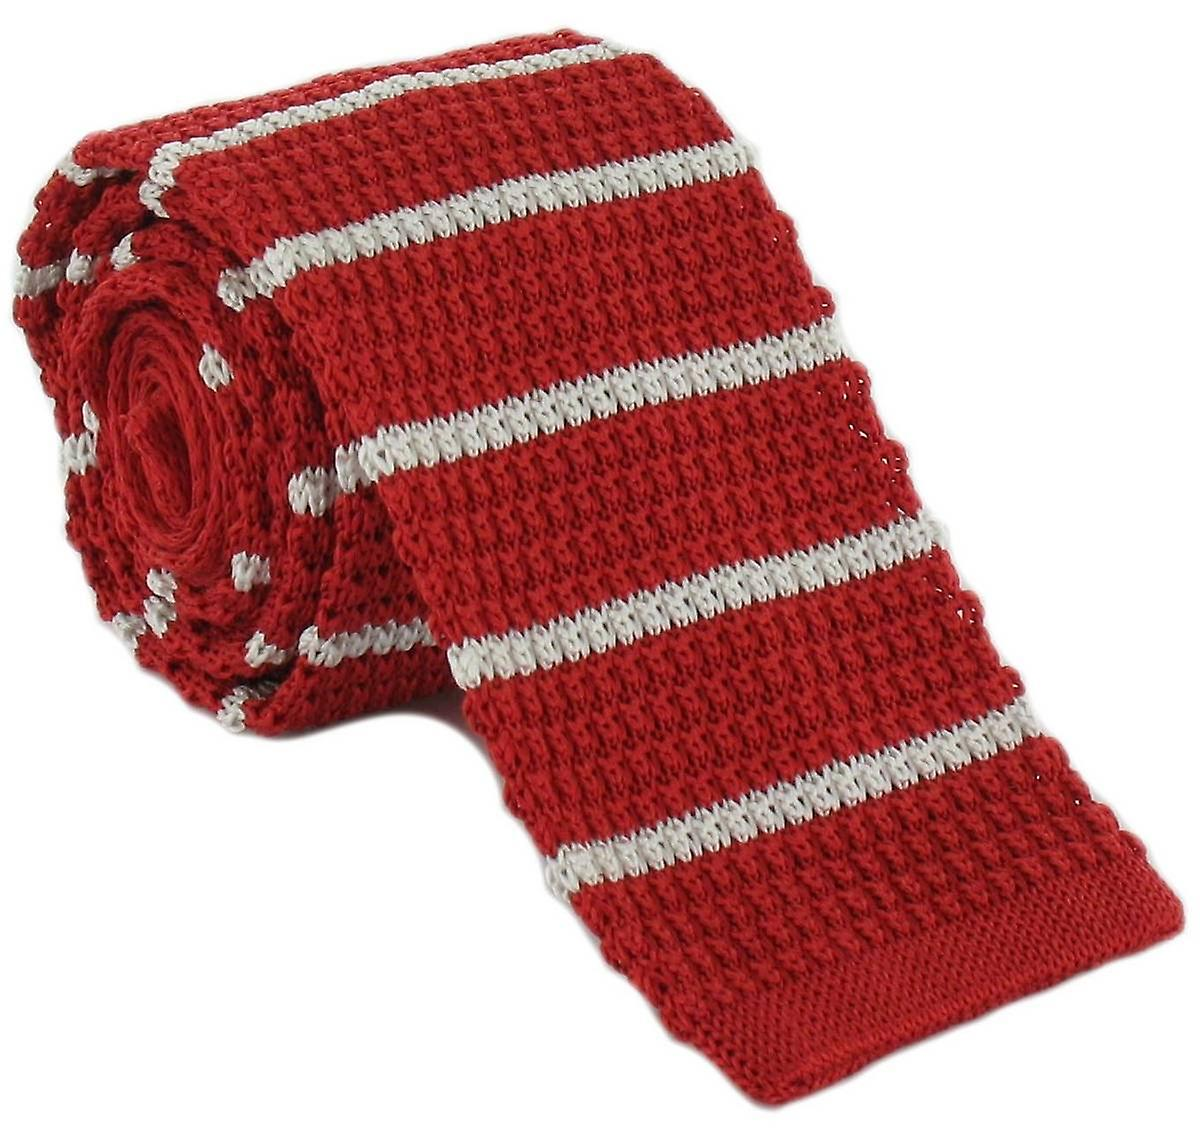 Michelsons of London Silk Knitted Striped Skinny Tie - Red/White